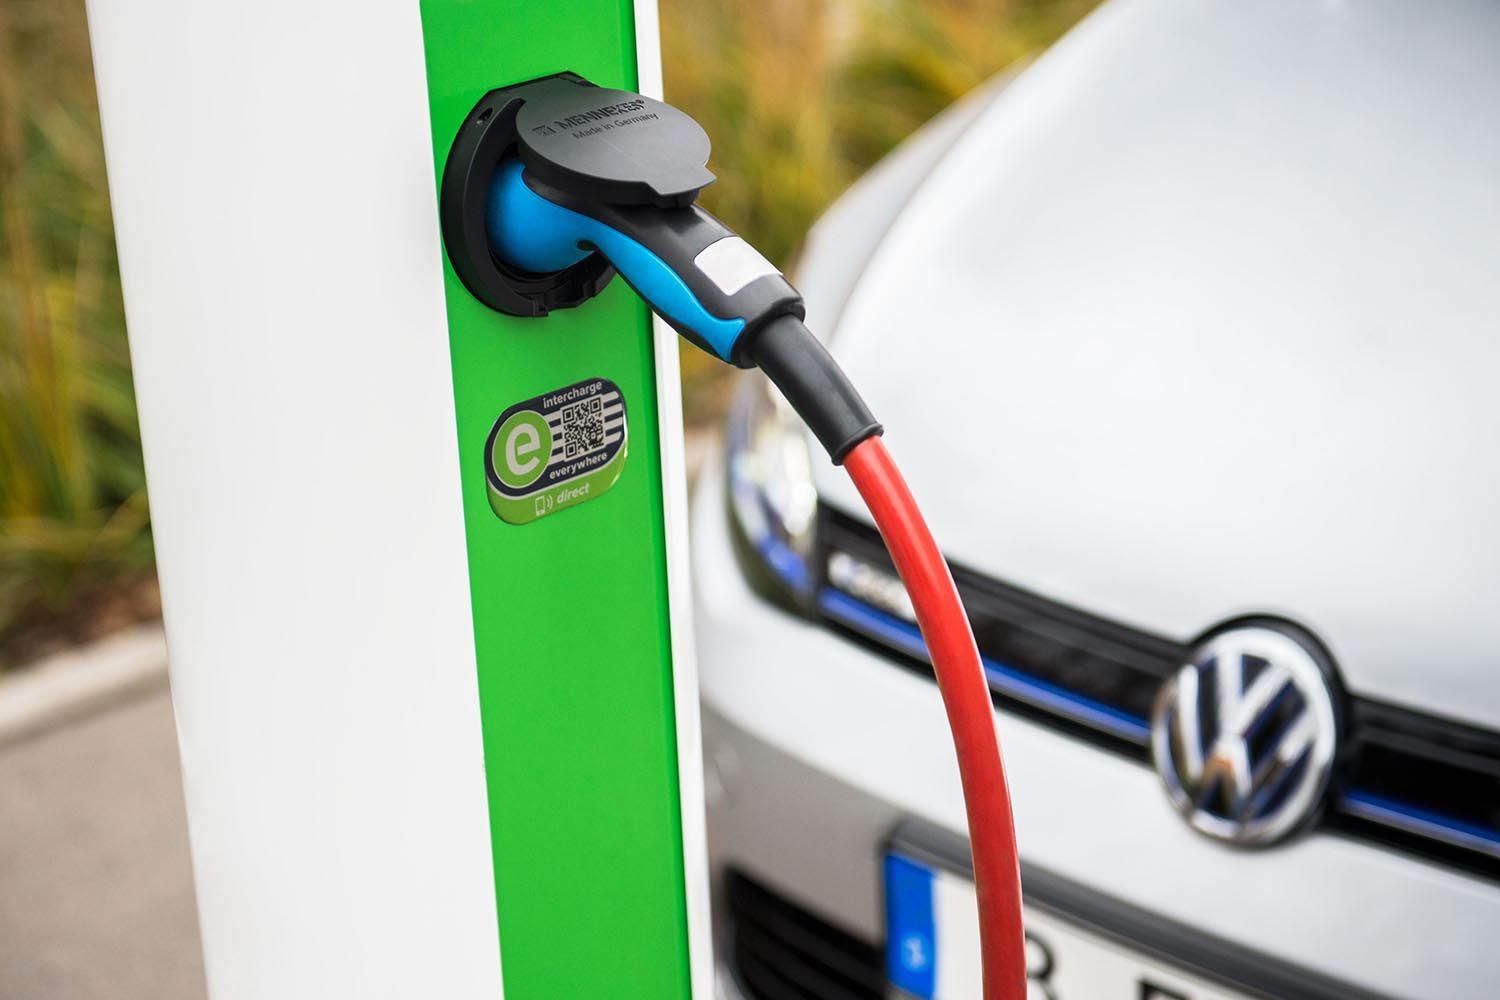 Charging your plug-in hybrid in public